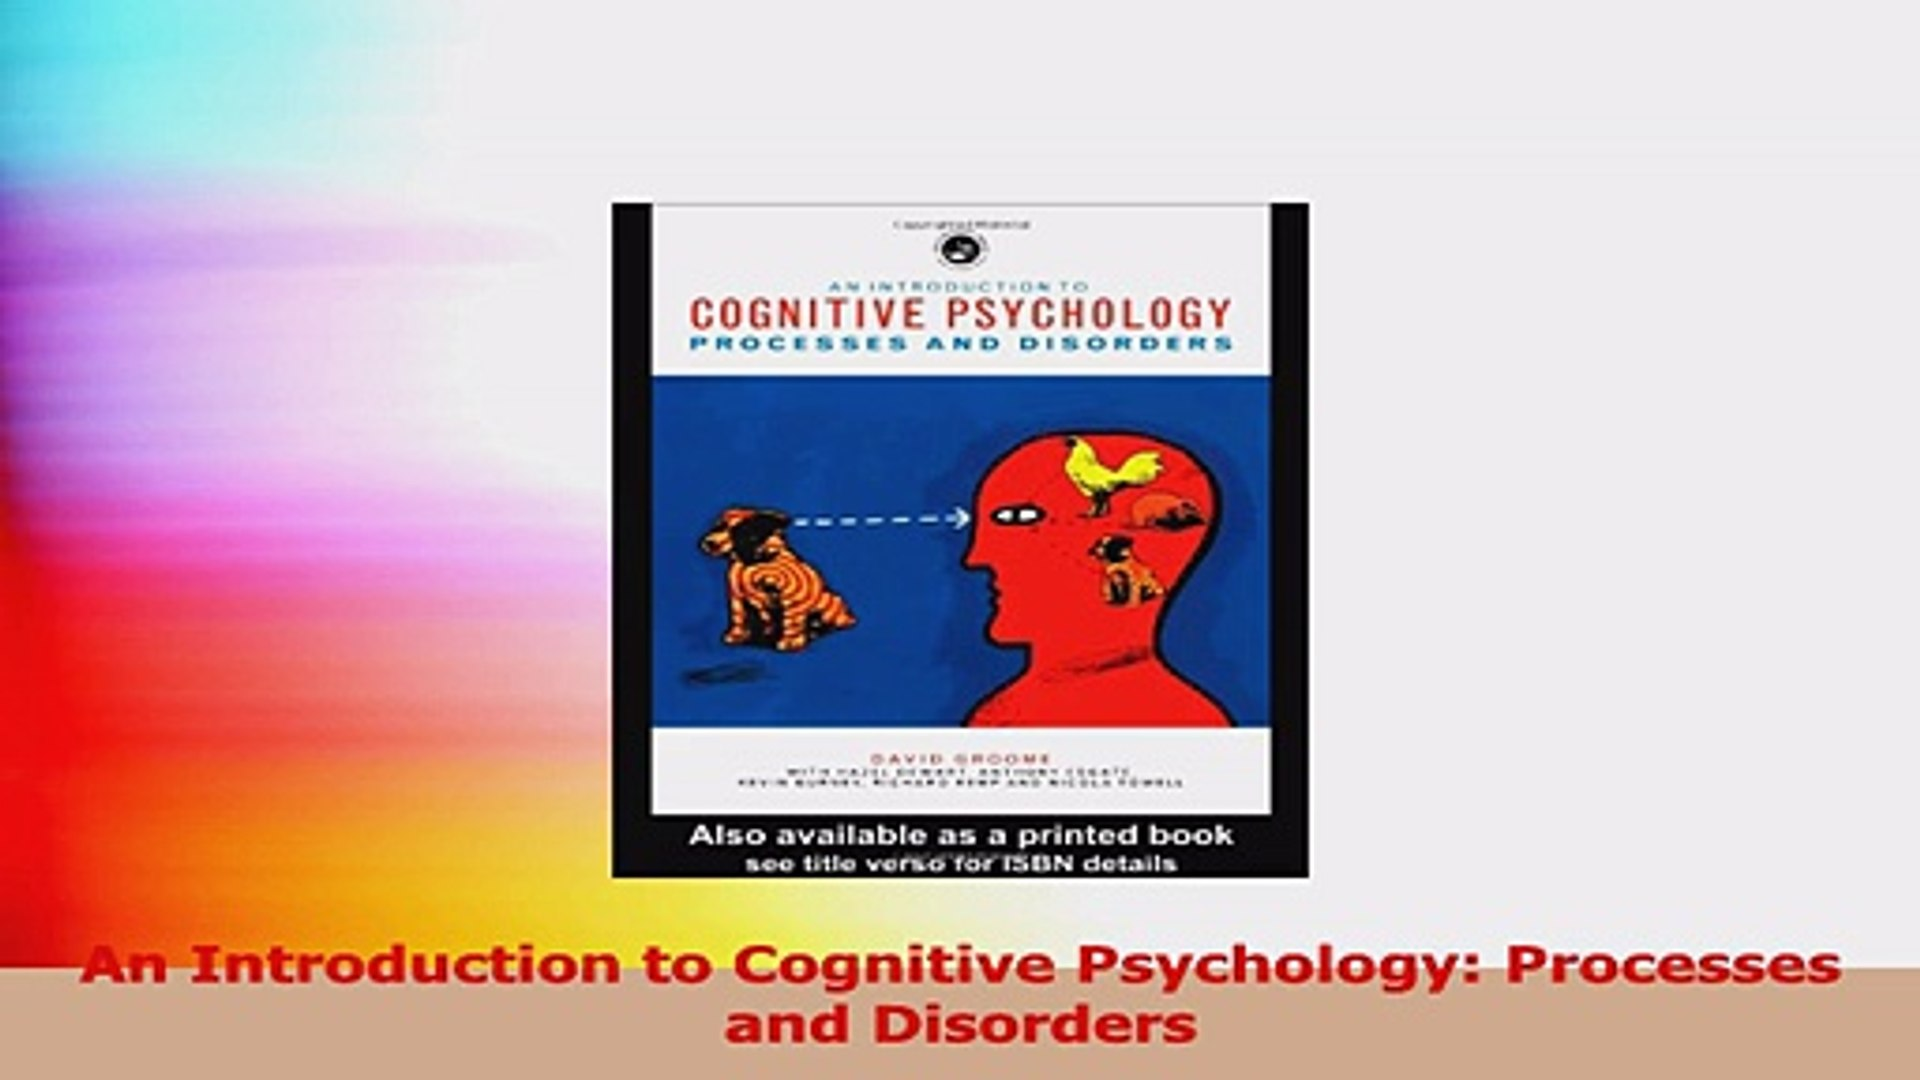 Processes and disorders An Introduction to Cognitive Psychology